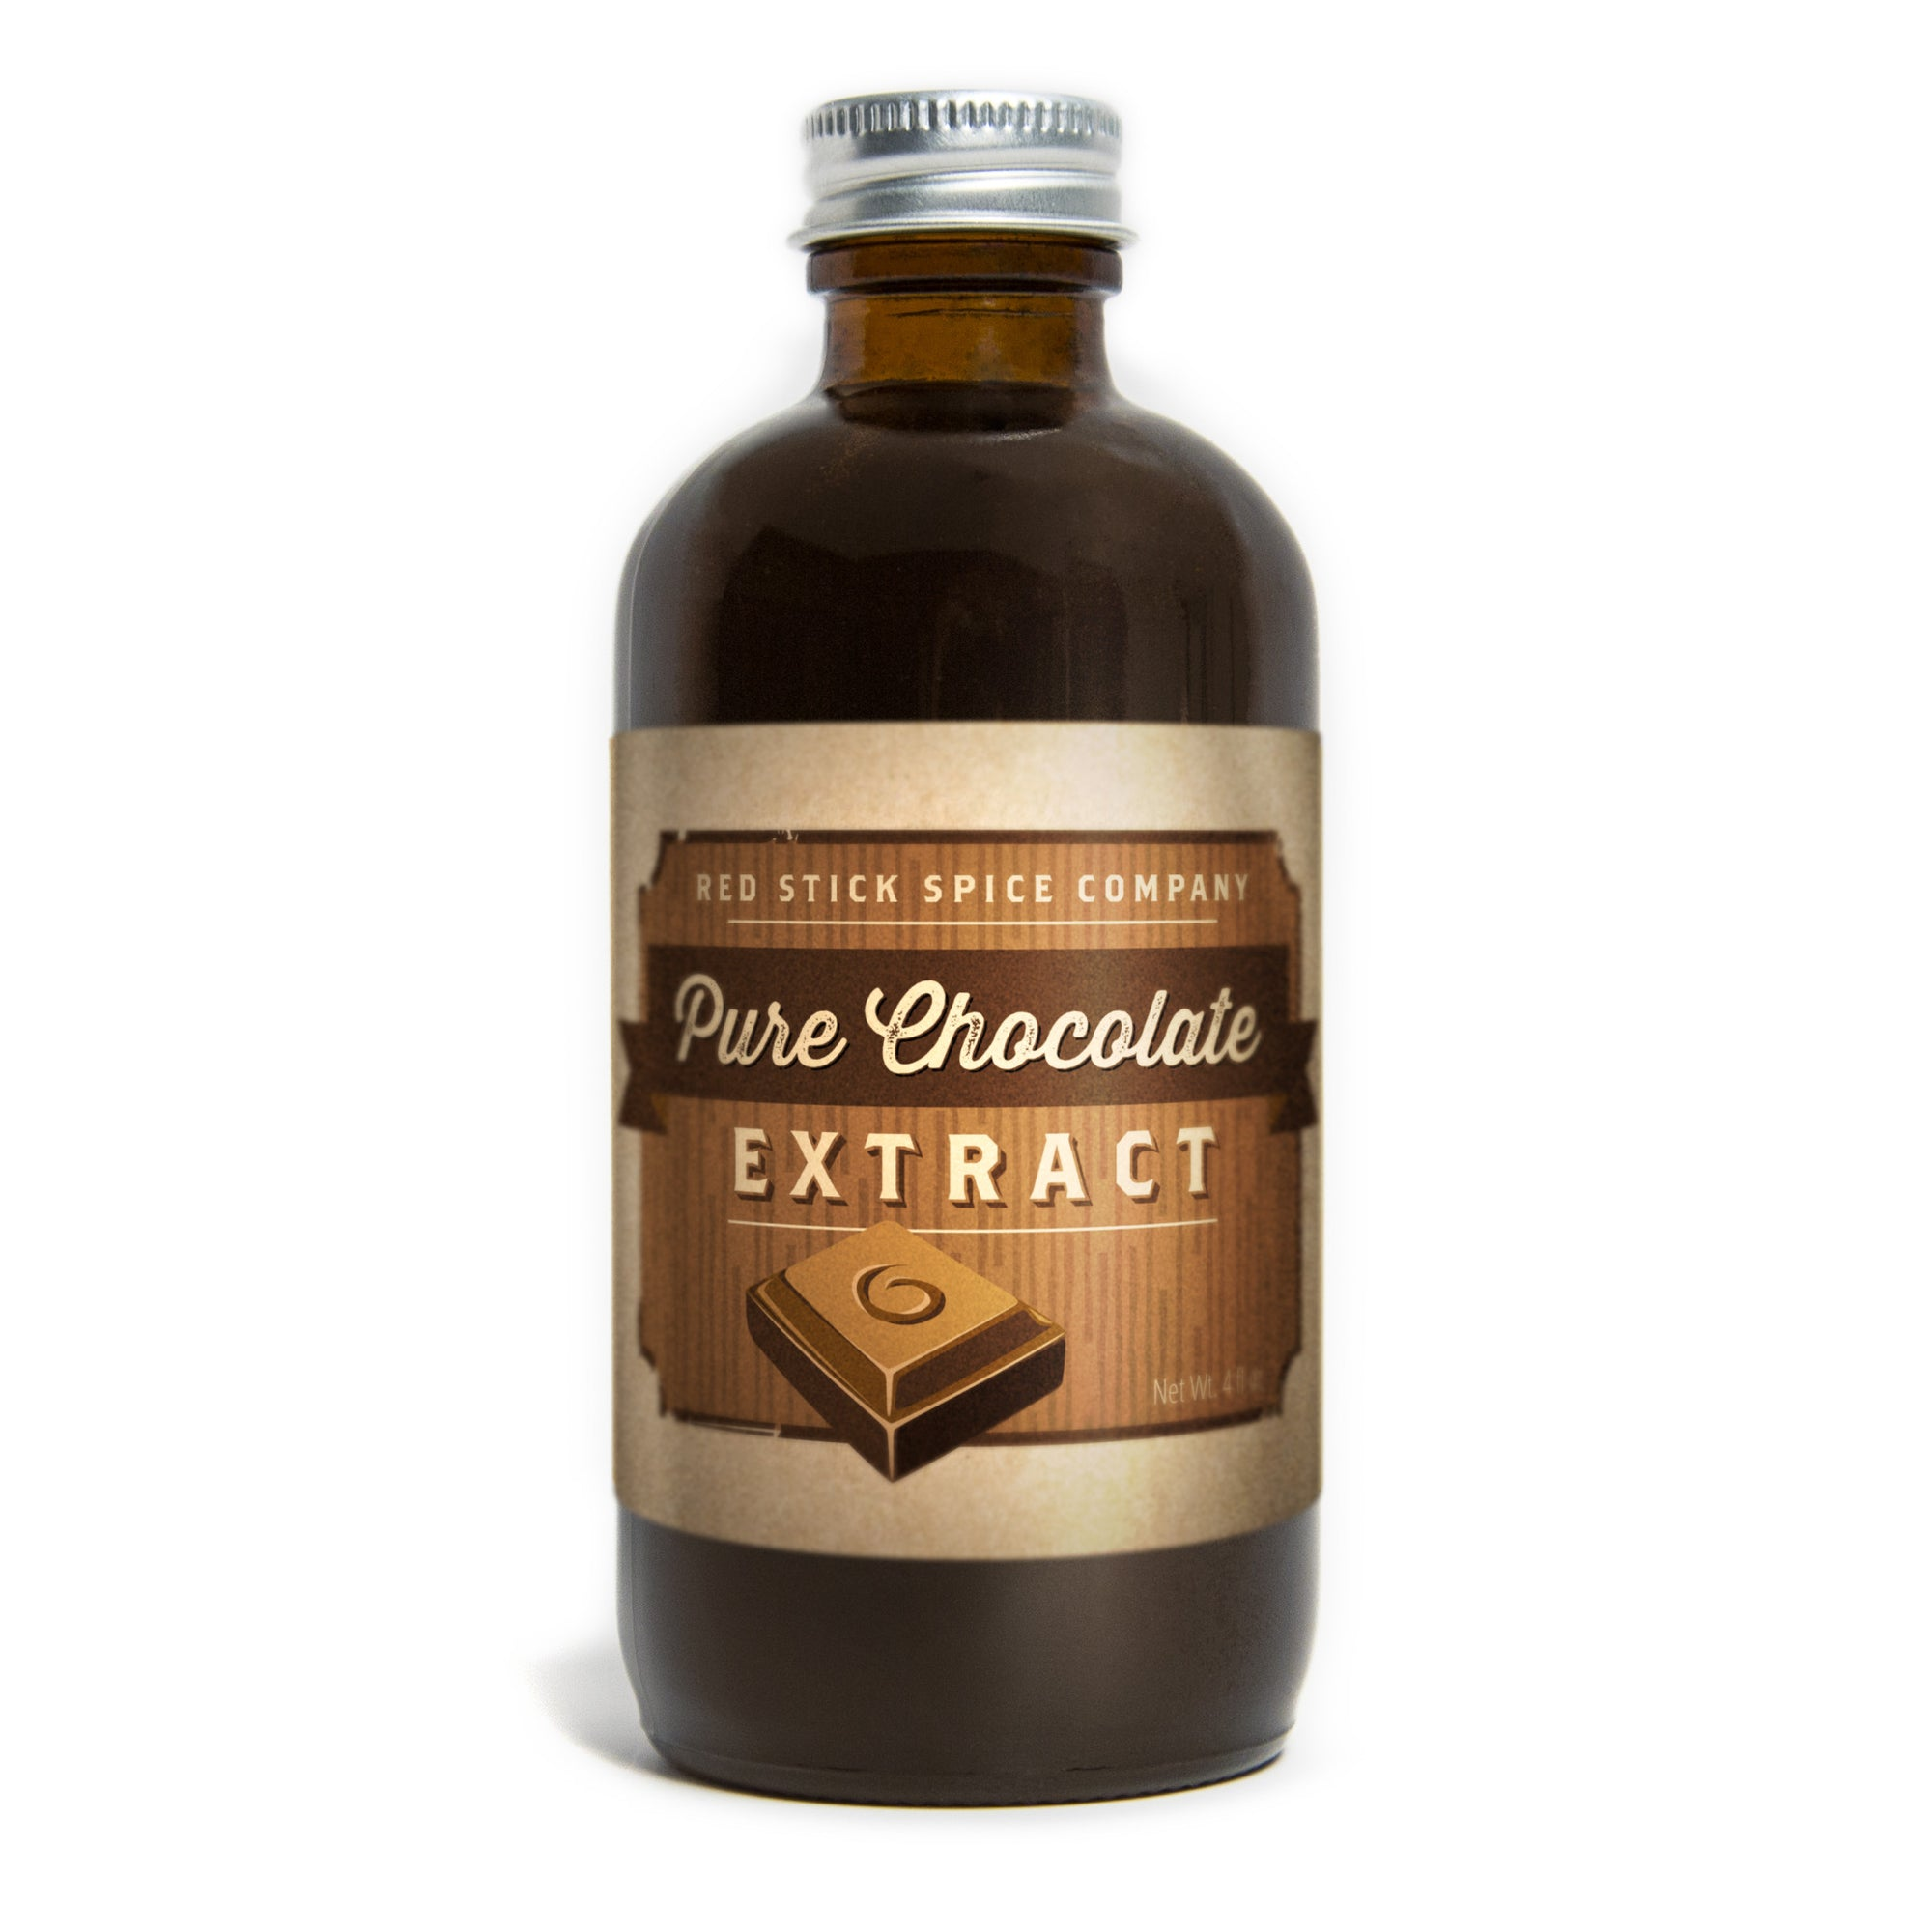 Pure Chocolate Extract - Extracts - Red Stick Spice Company